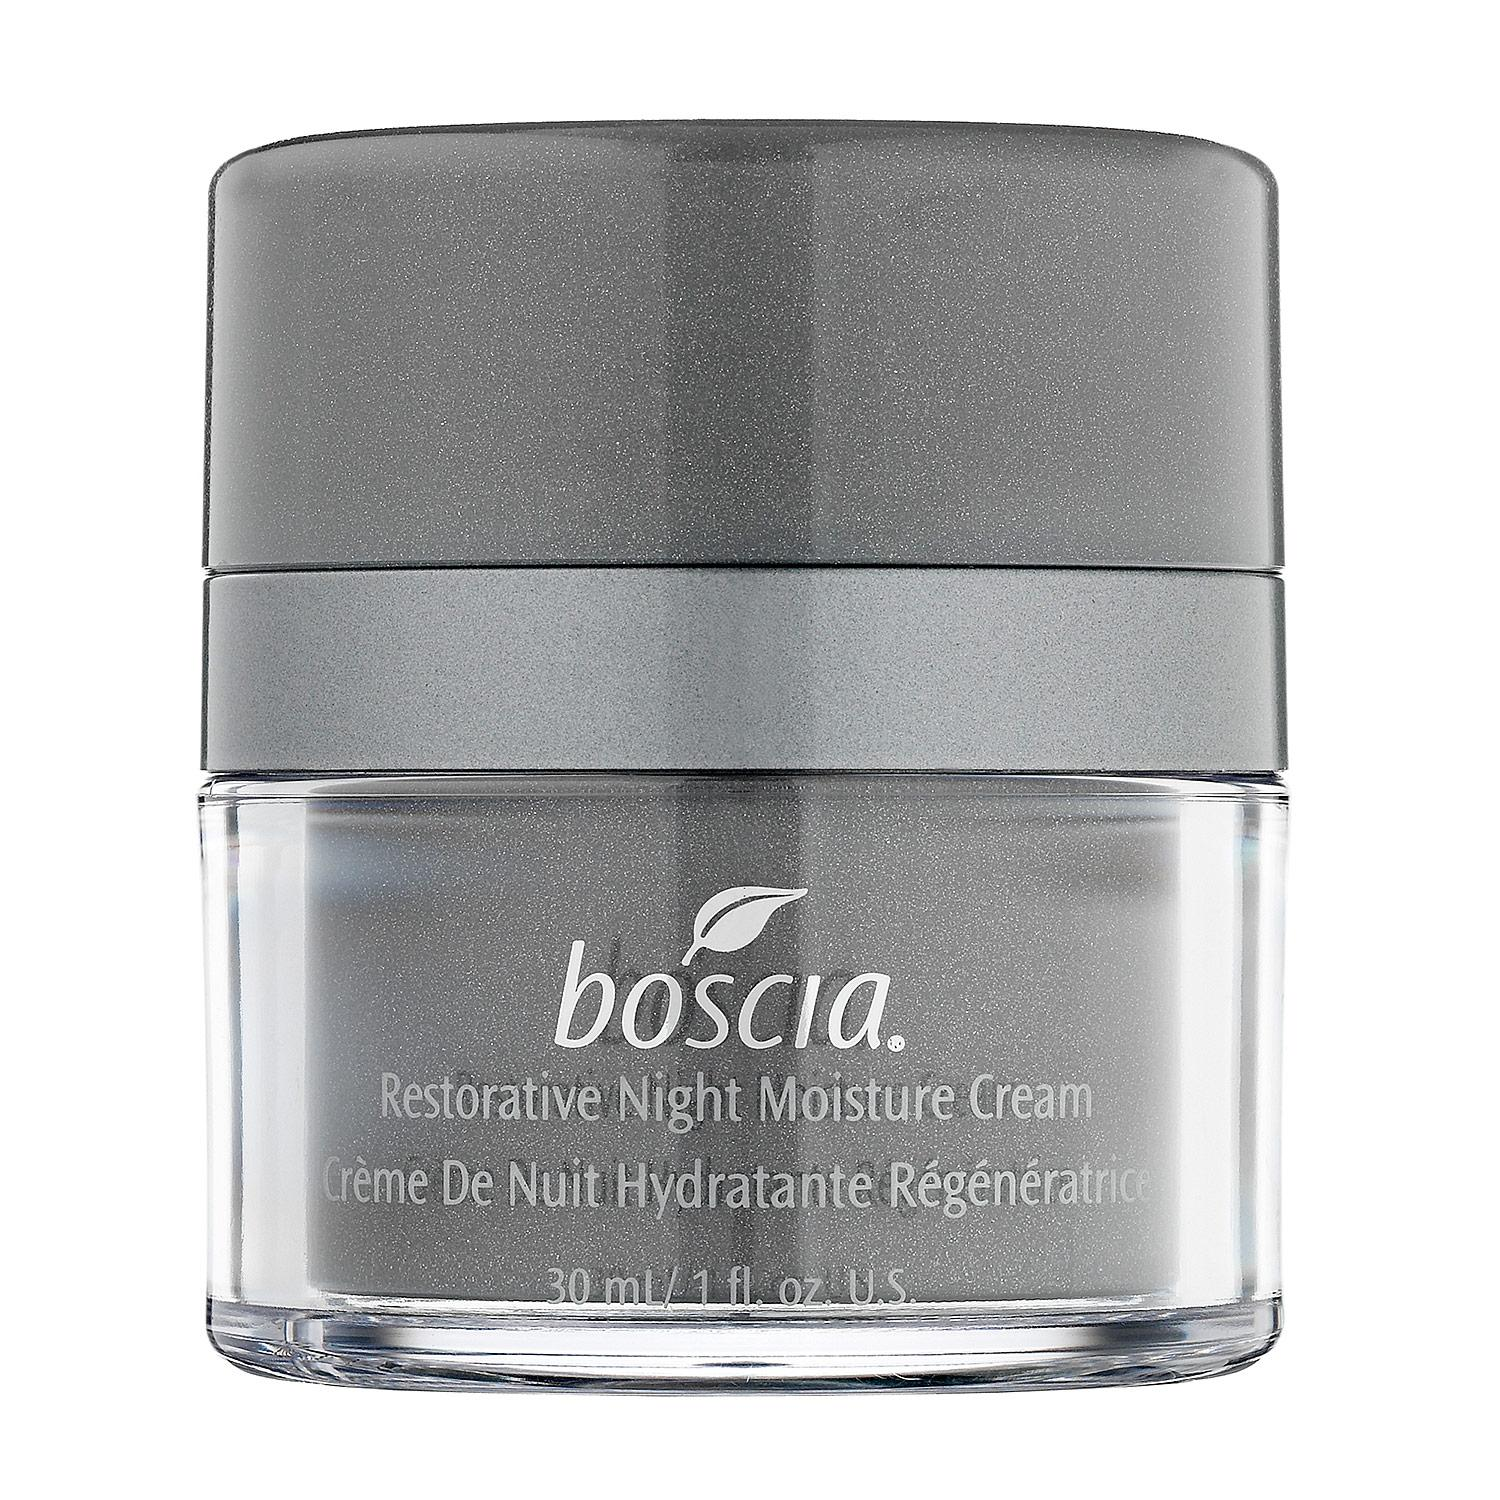 Restorative Night Moisture Cream